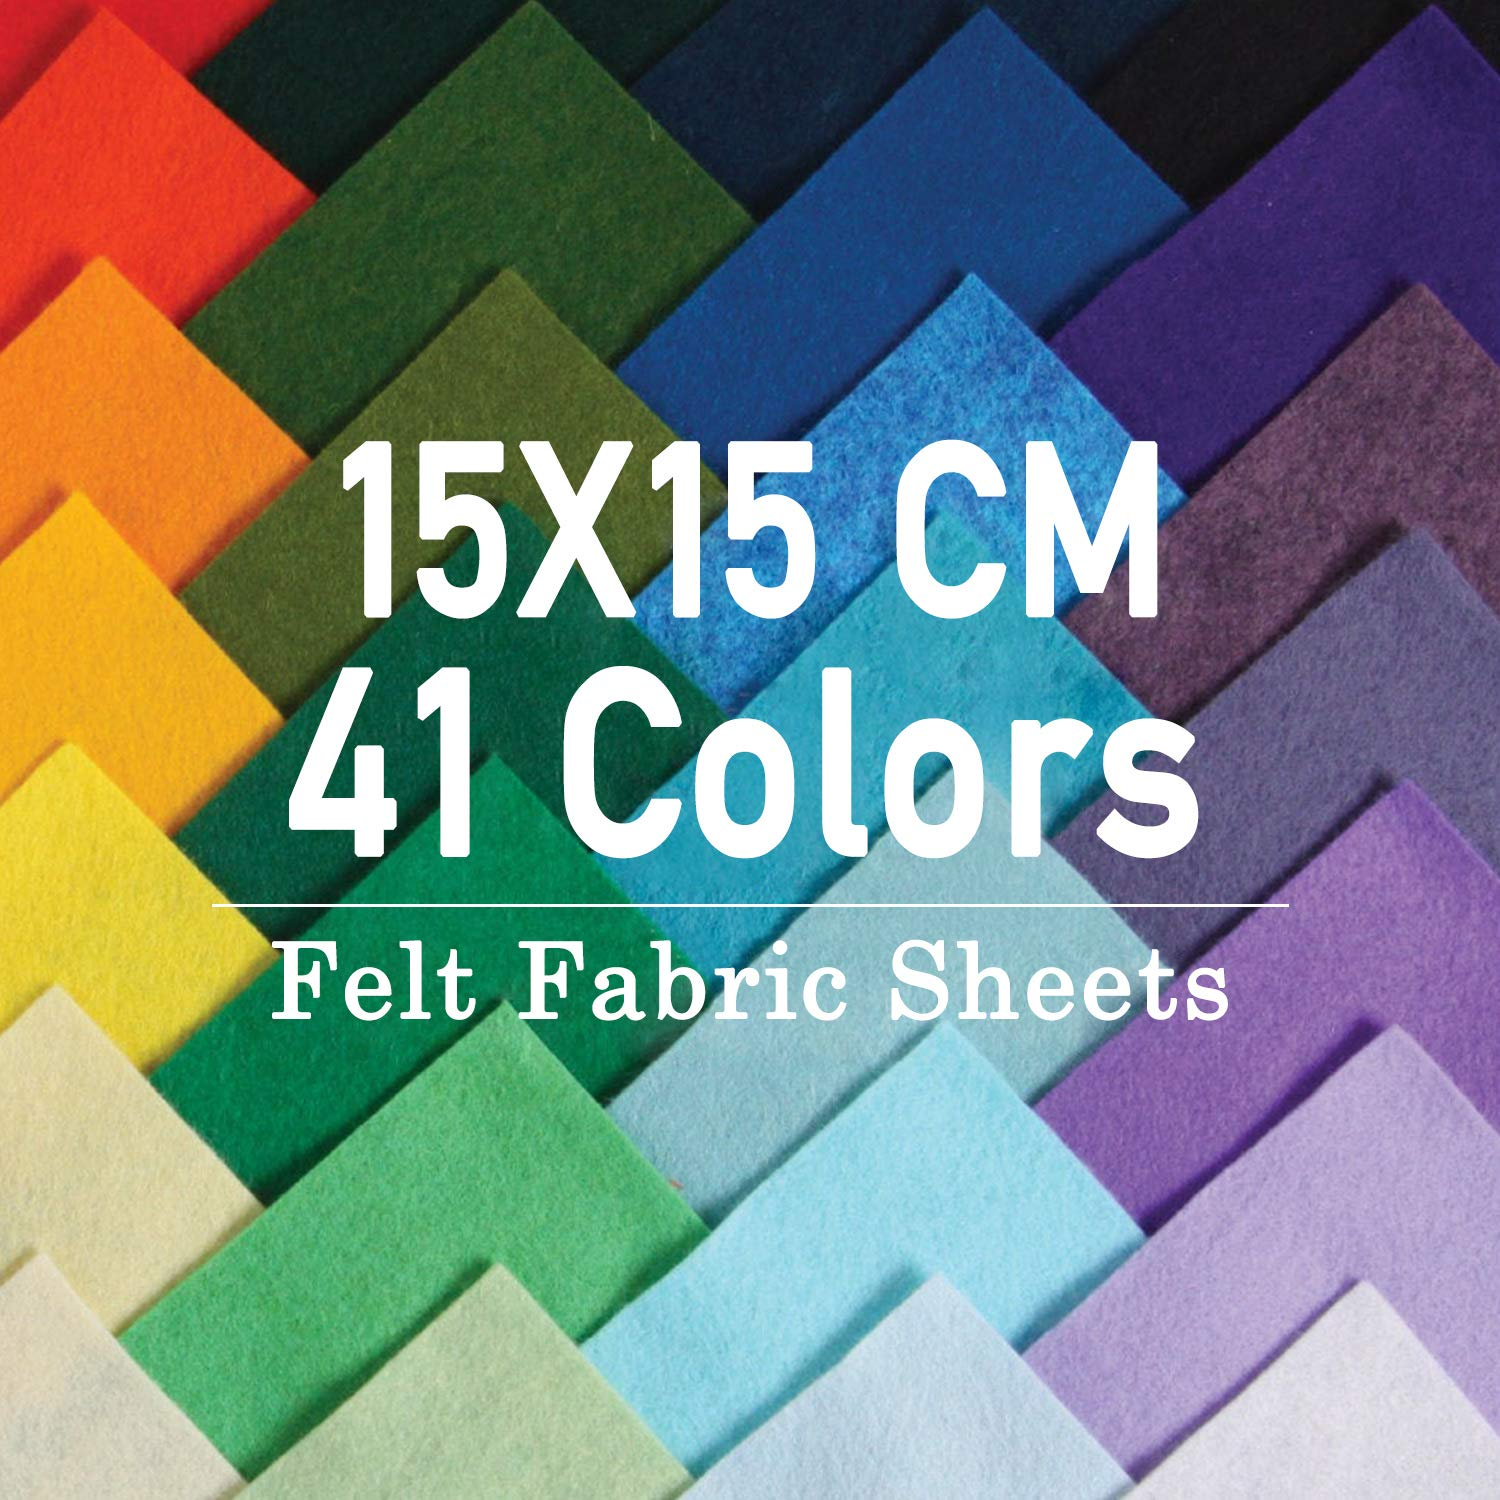 Felt and Cushions Felt Fabric Used for DIY Crafts Christmas Ornament Crafts for Children with Bobbin Thread Three Sizes 6 Inch Felt Sheets SOLED/Ì 41 Colors 6 15 * 15cm